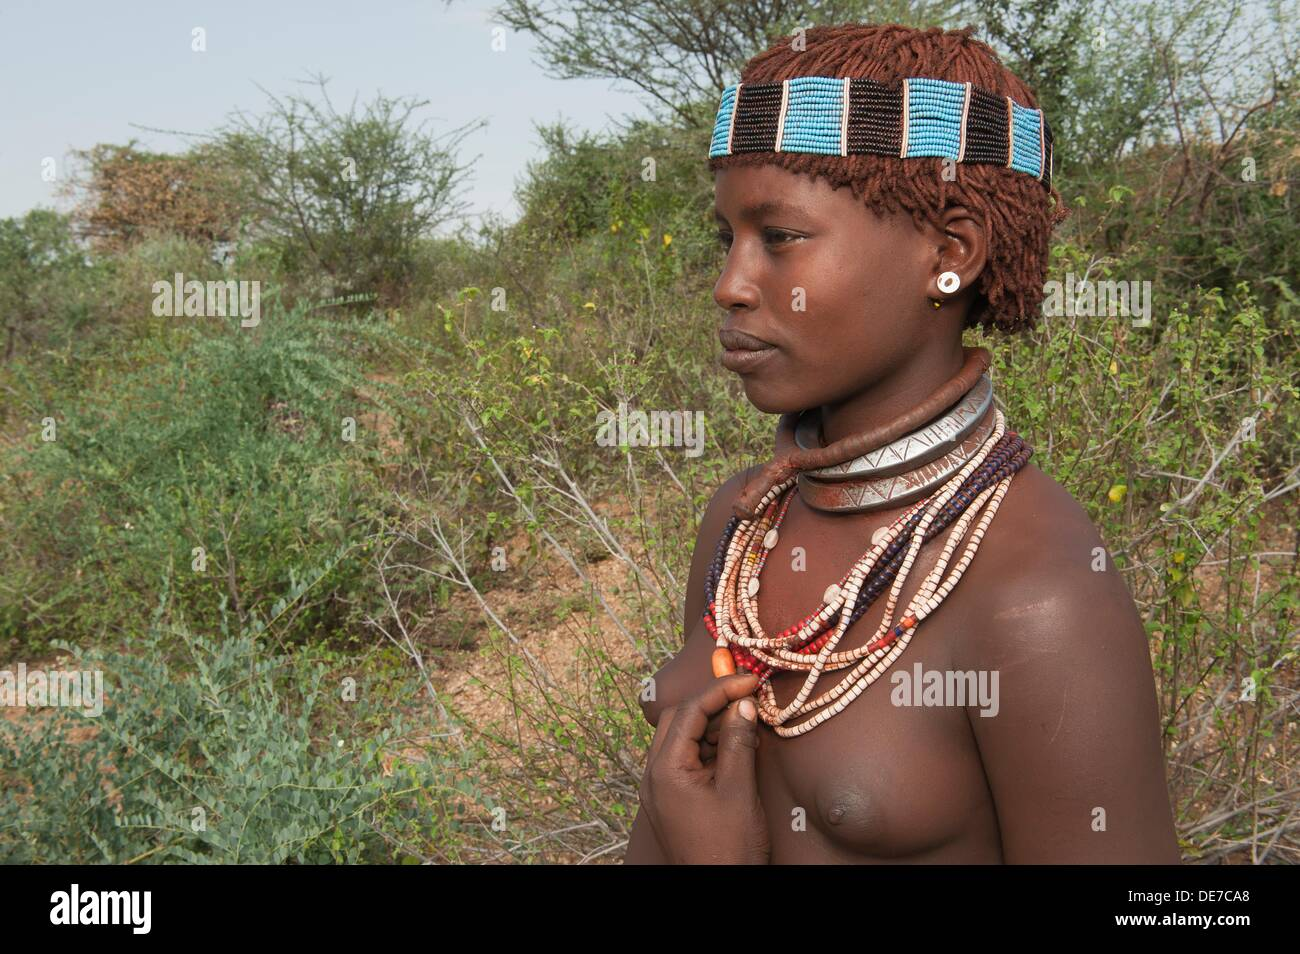 Young Hamar woman with necklaces and hair adornment, Omo river valley, Southern Ethiopia - Stock Image